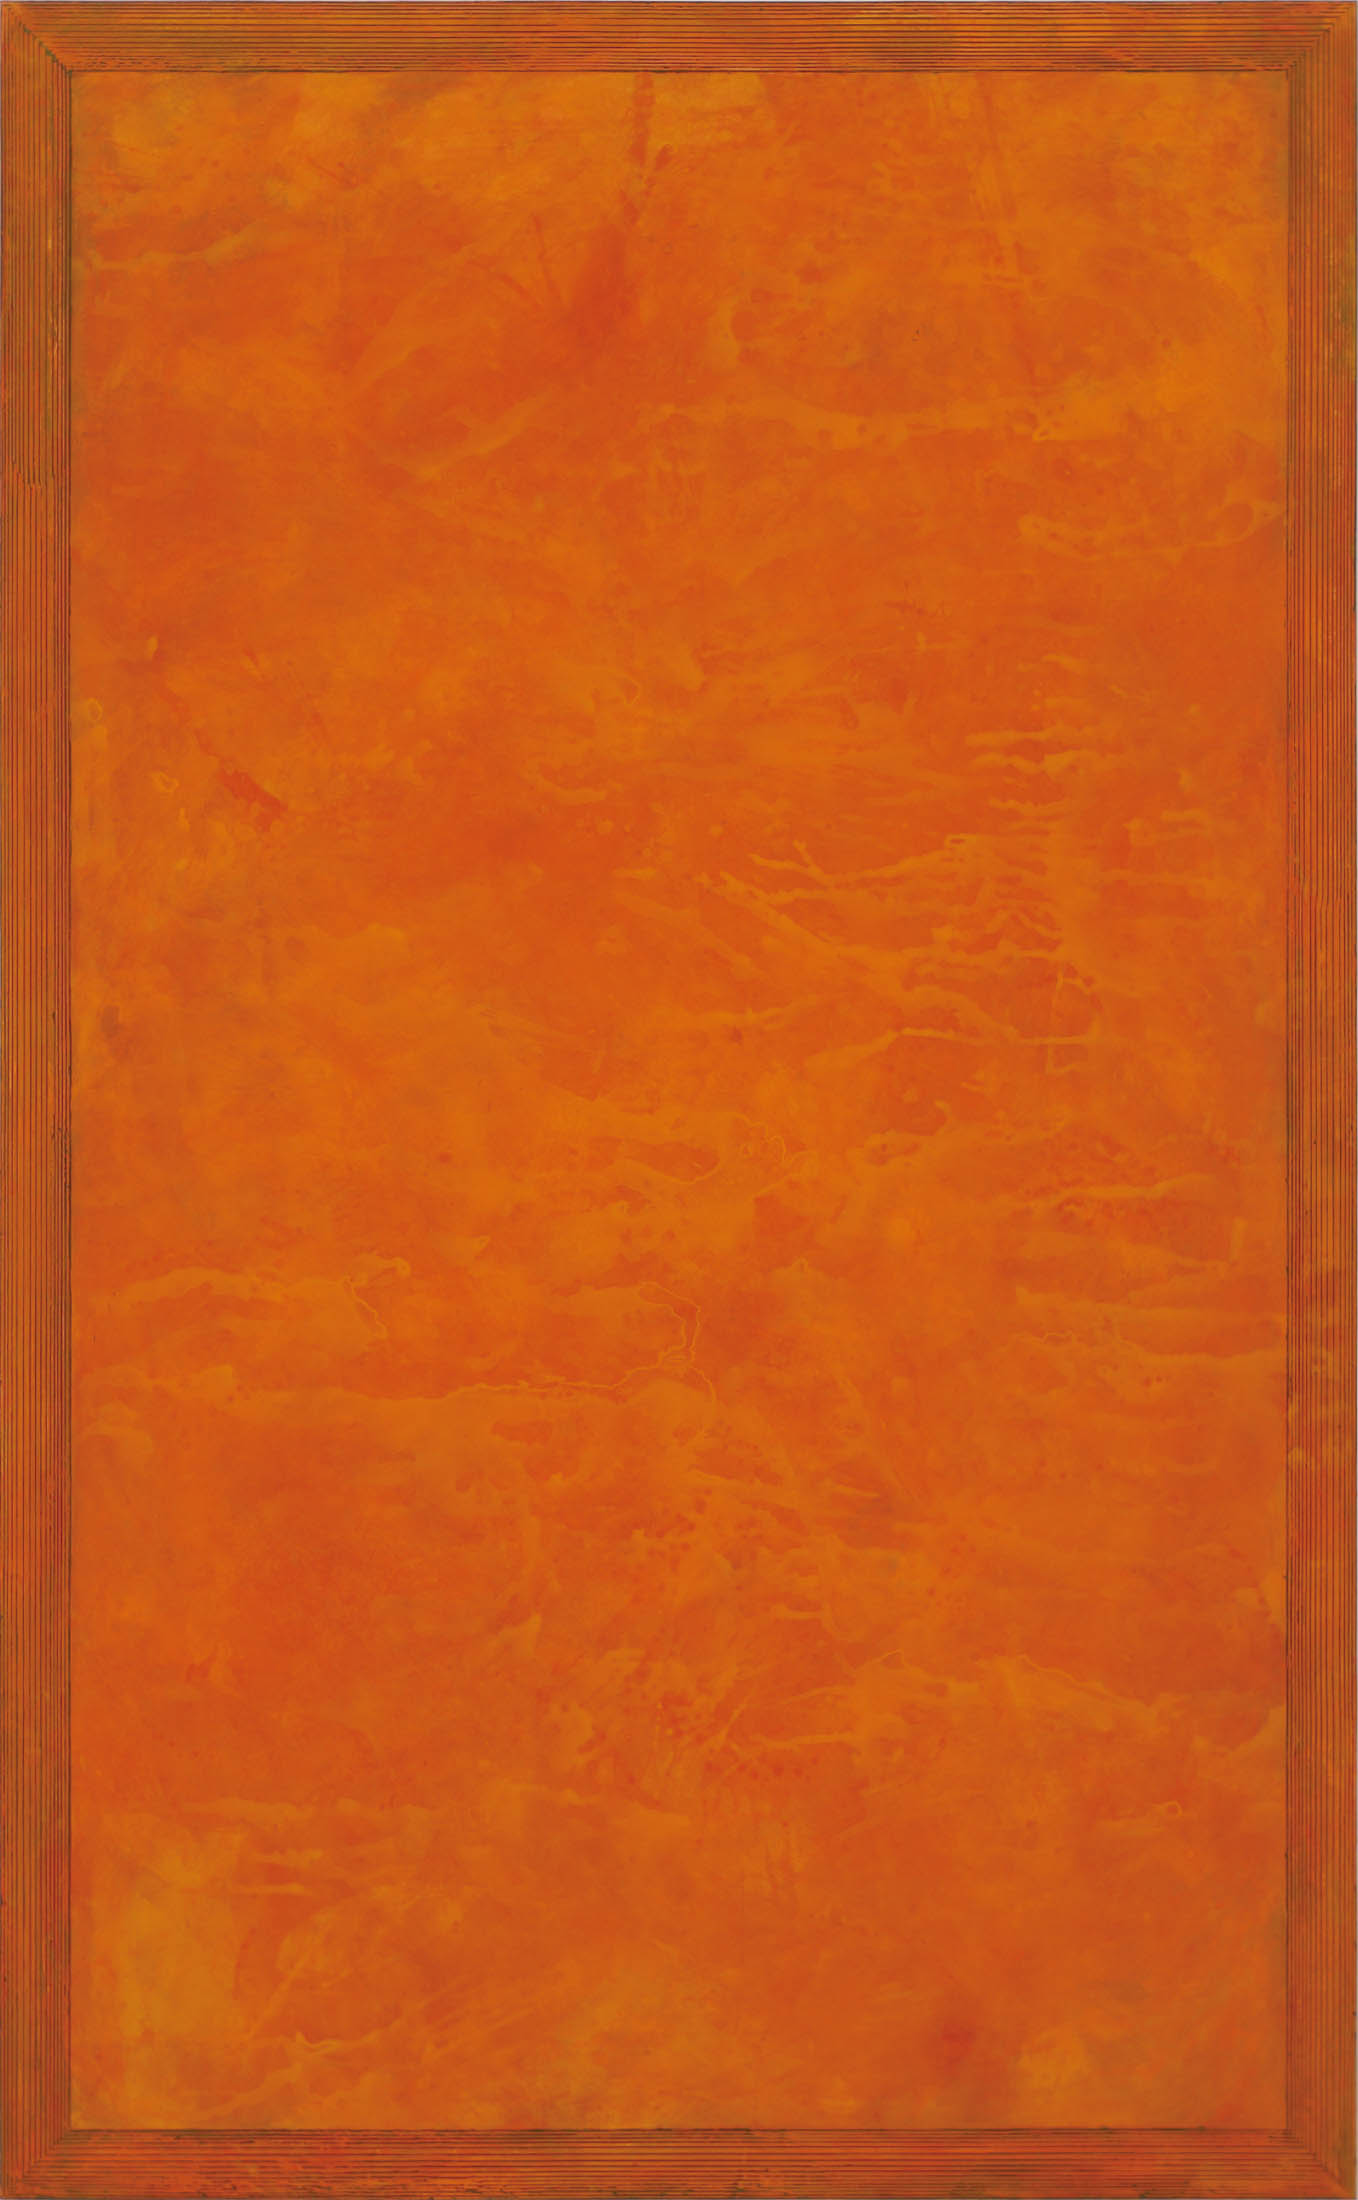 Turning spatial (orange)